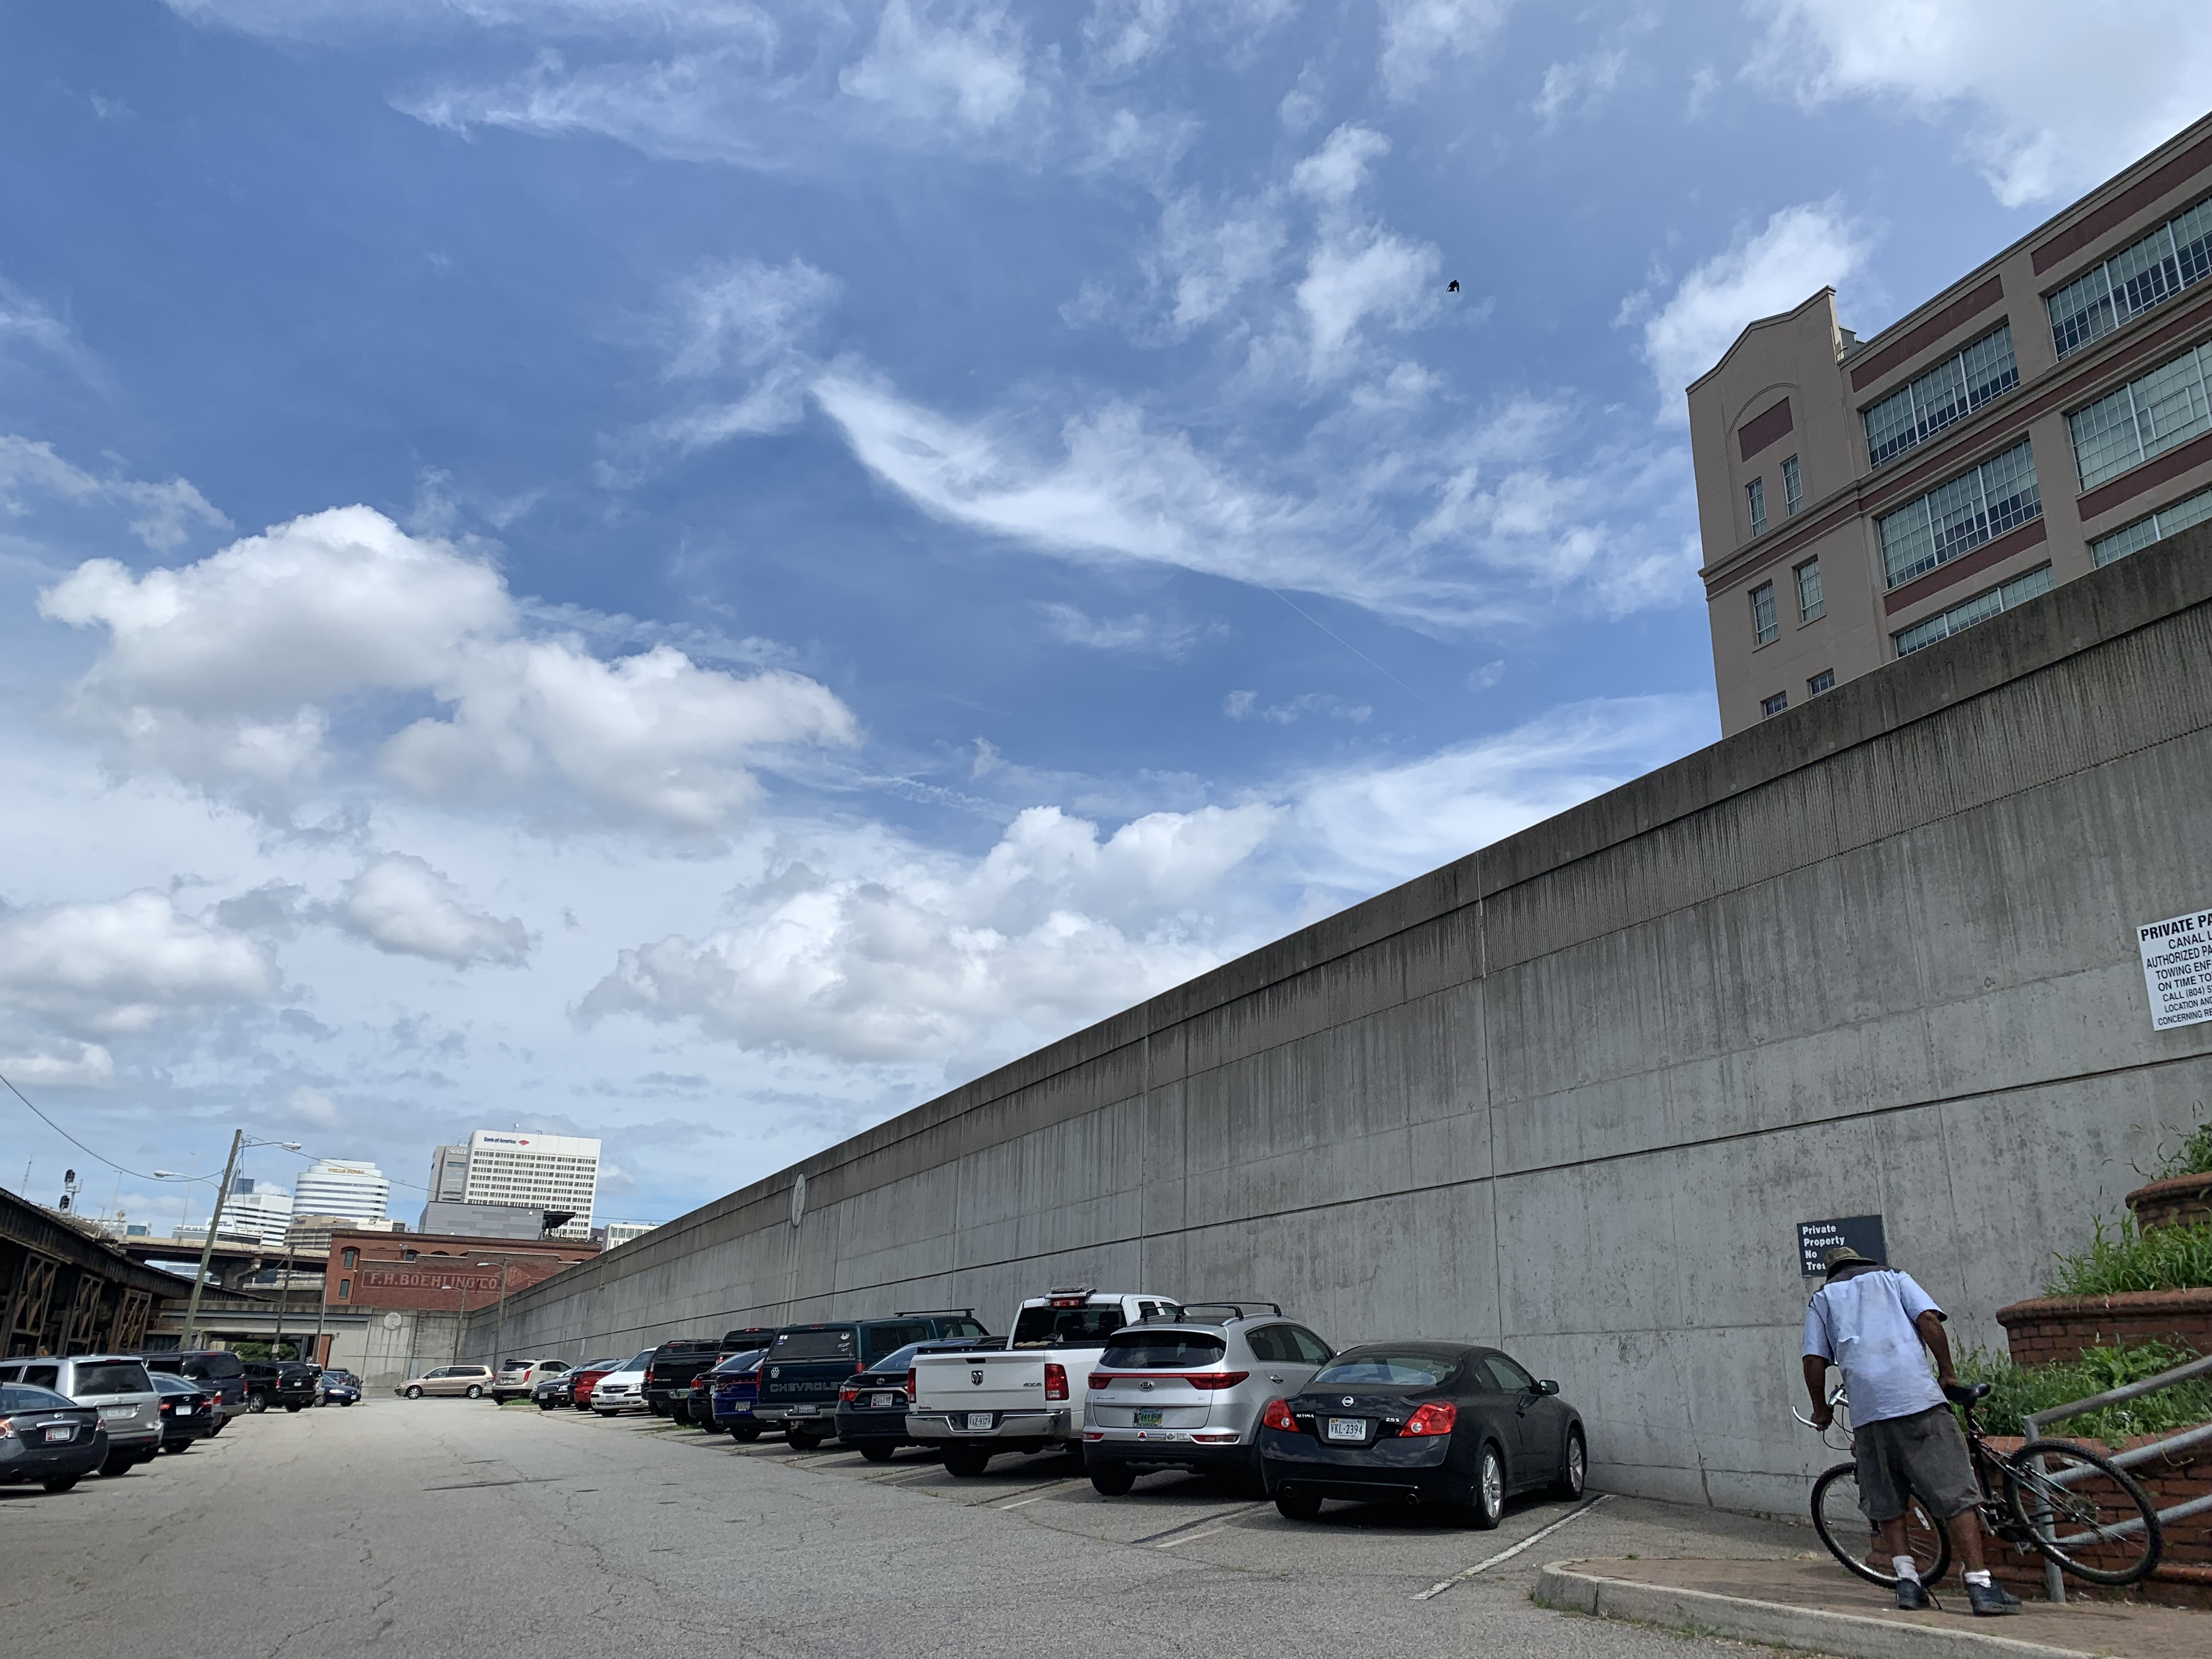 Artists to make Richmond's floodwall their canvas during RVA Street